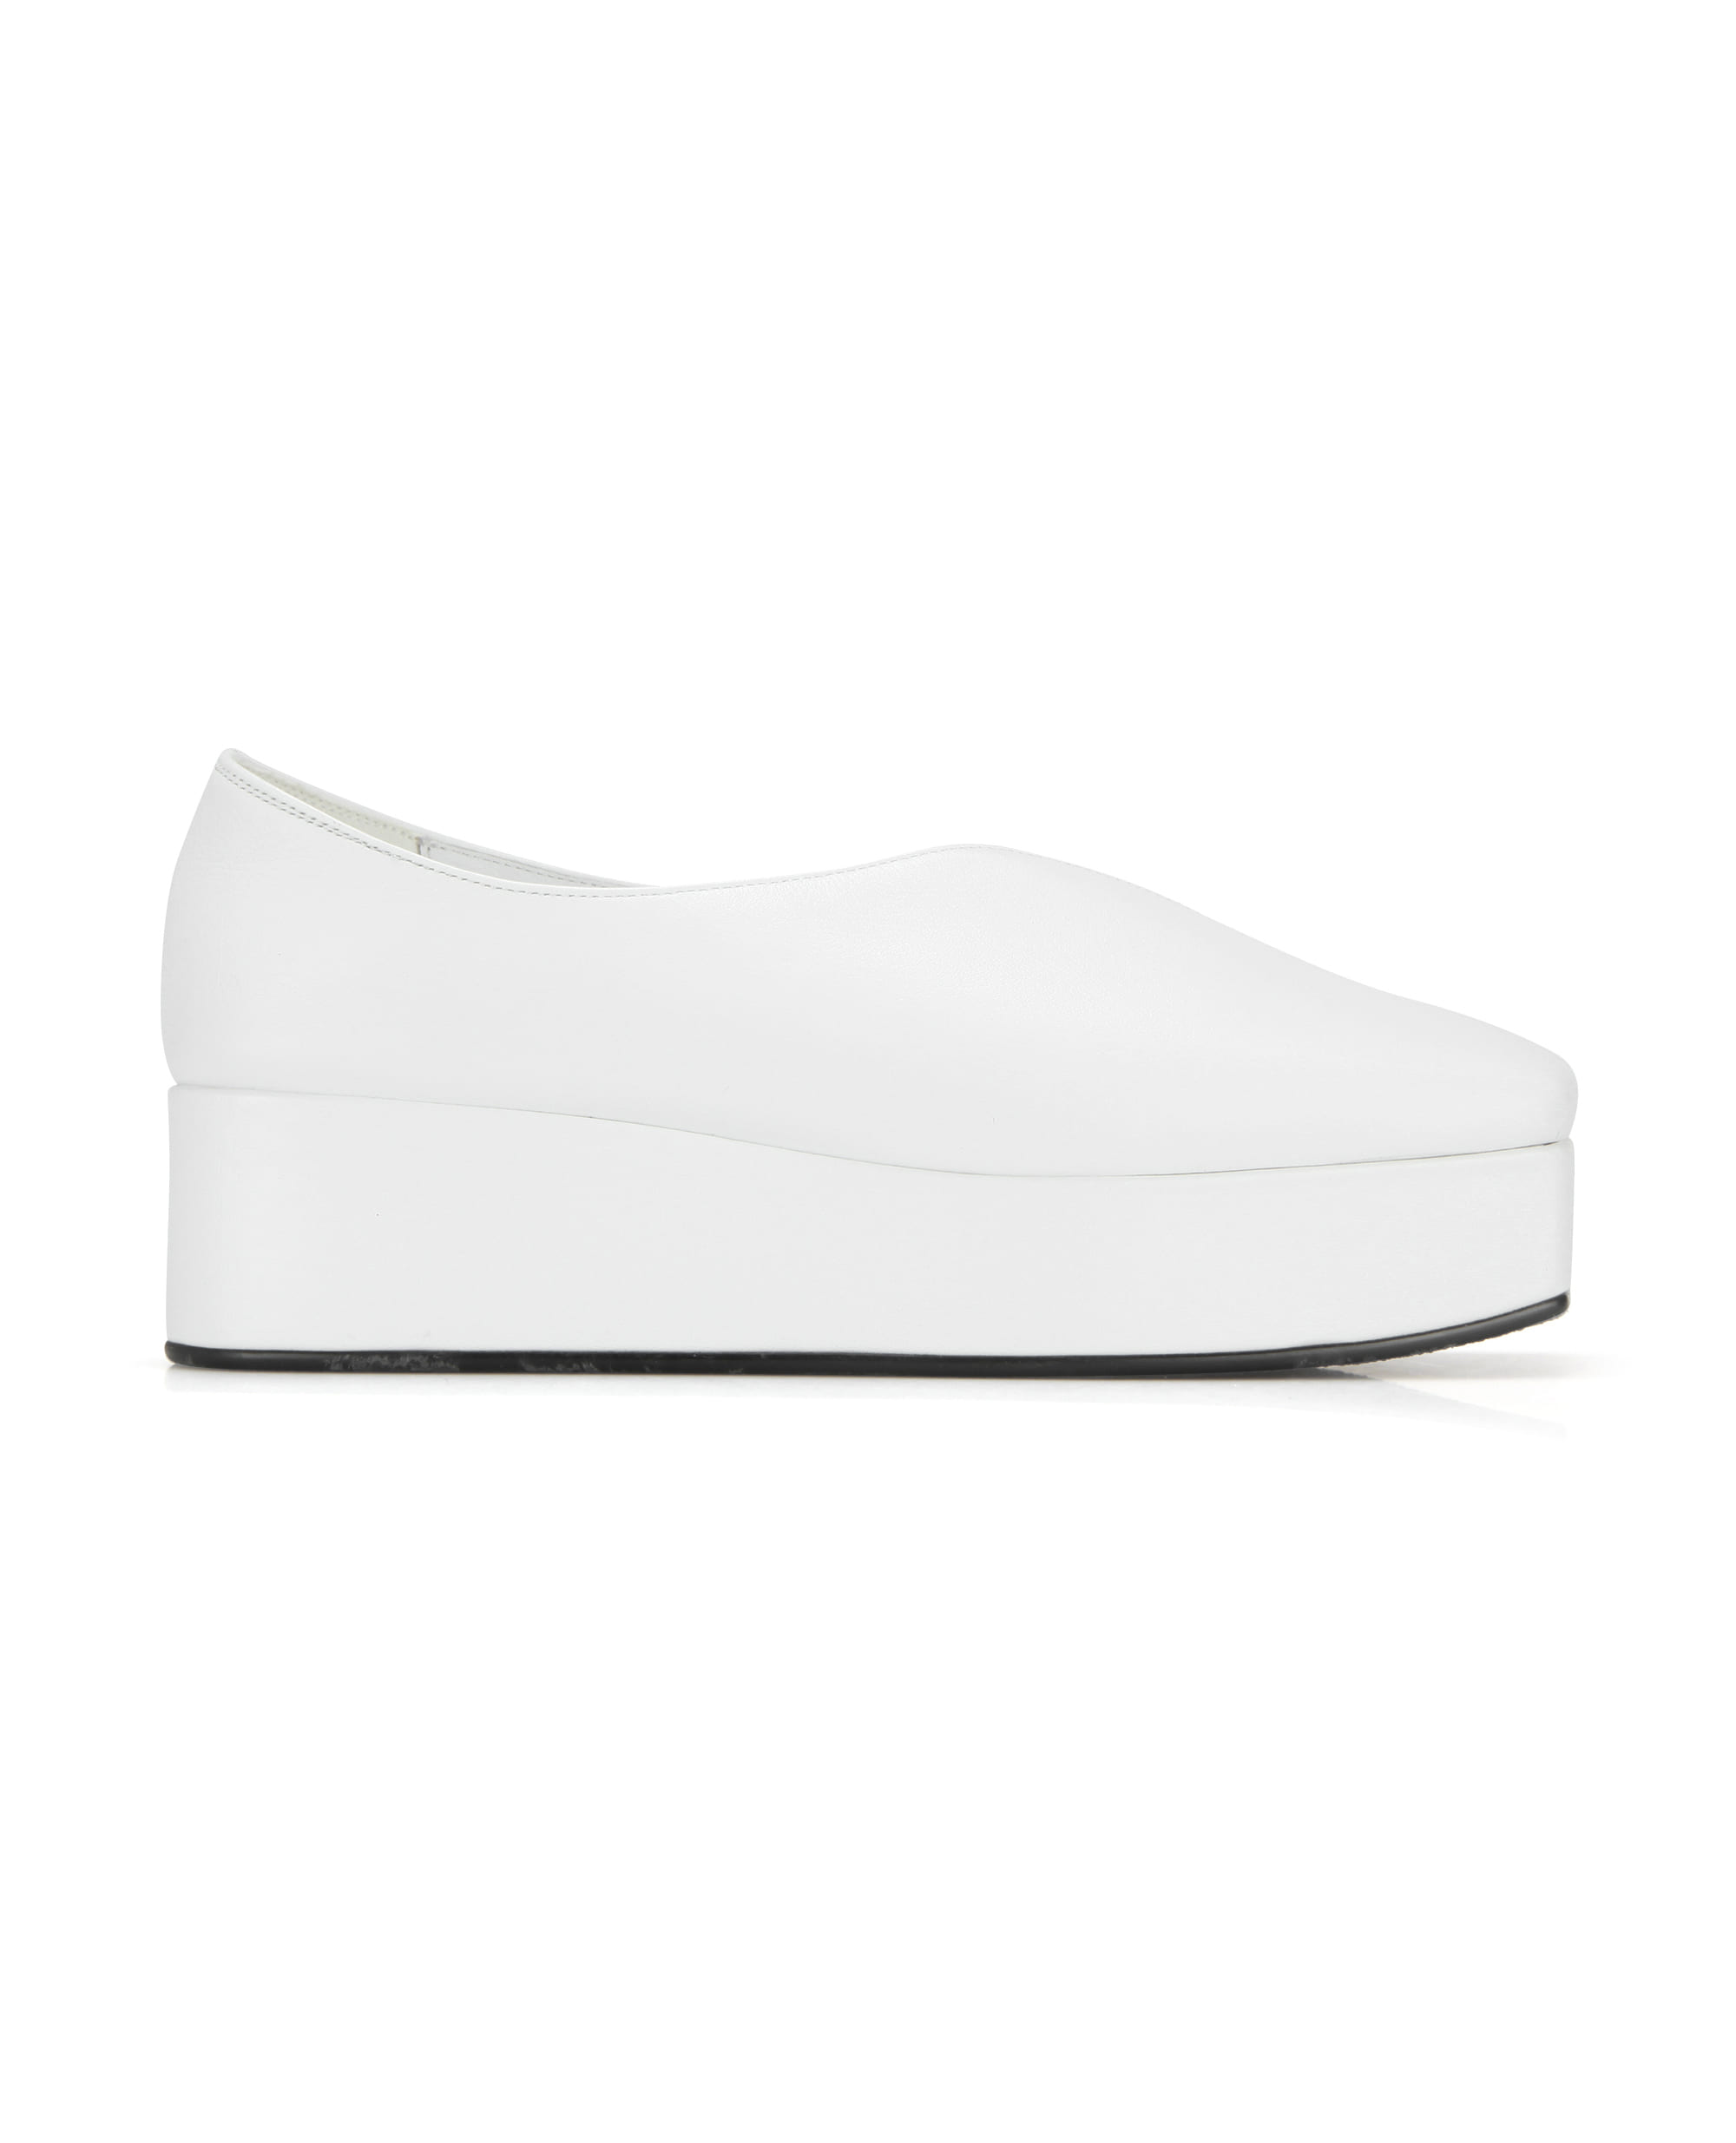 Streamlined Squared toe platforms | White